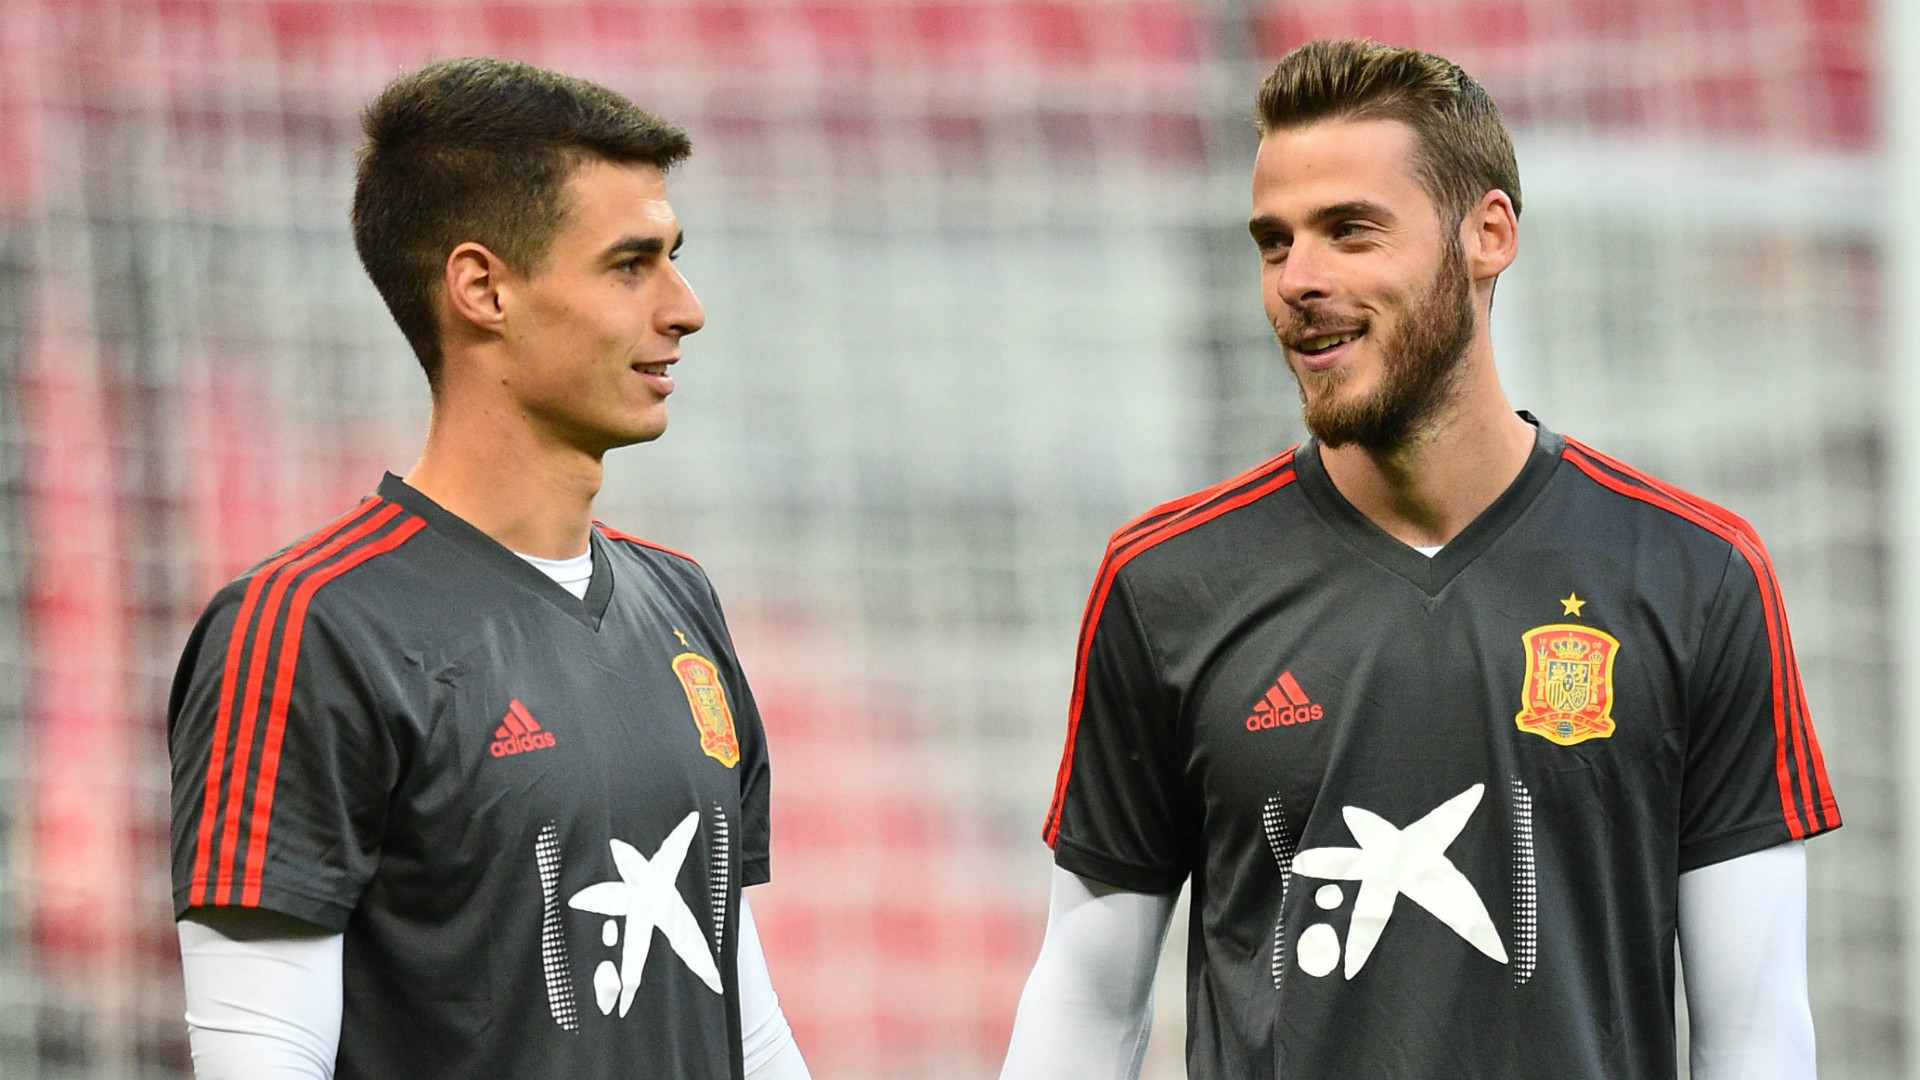 new style 26476 a95ce Chelsea vs Manchester United: How Kepa Arrizbalaga rose from ...